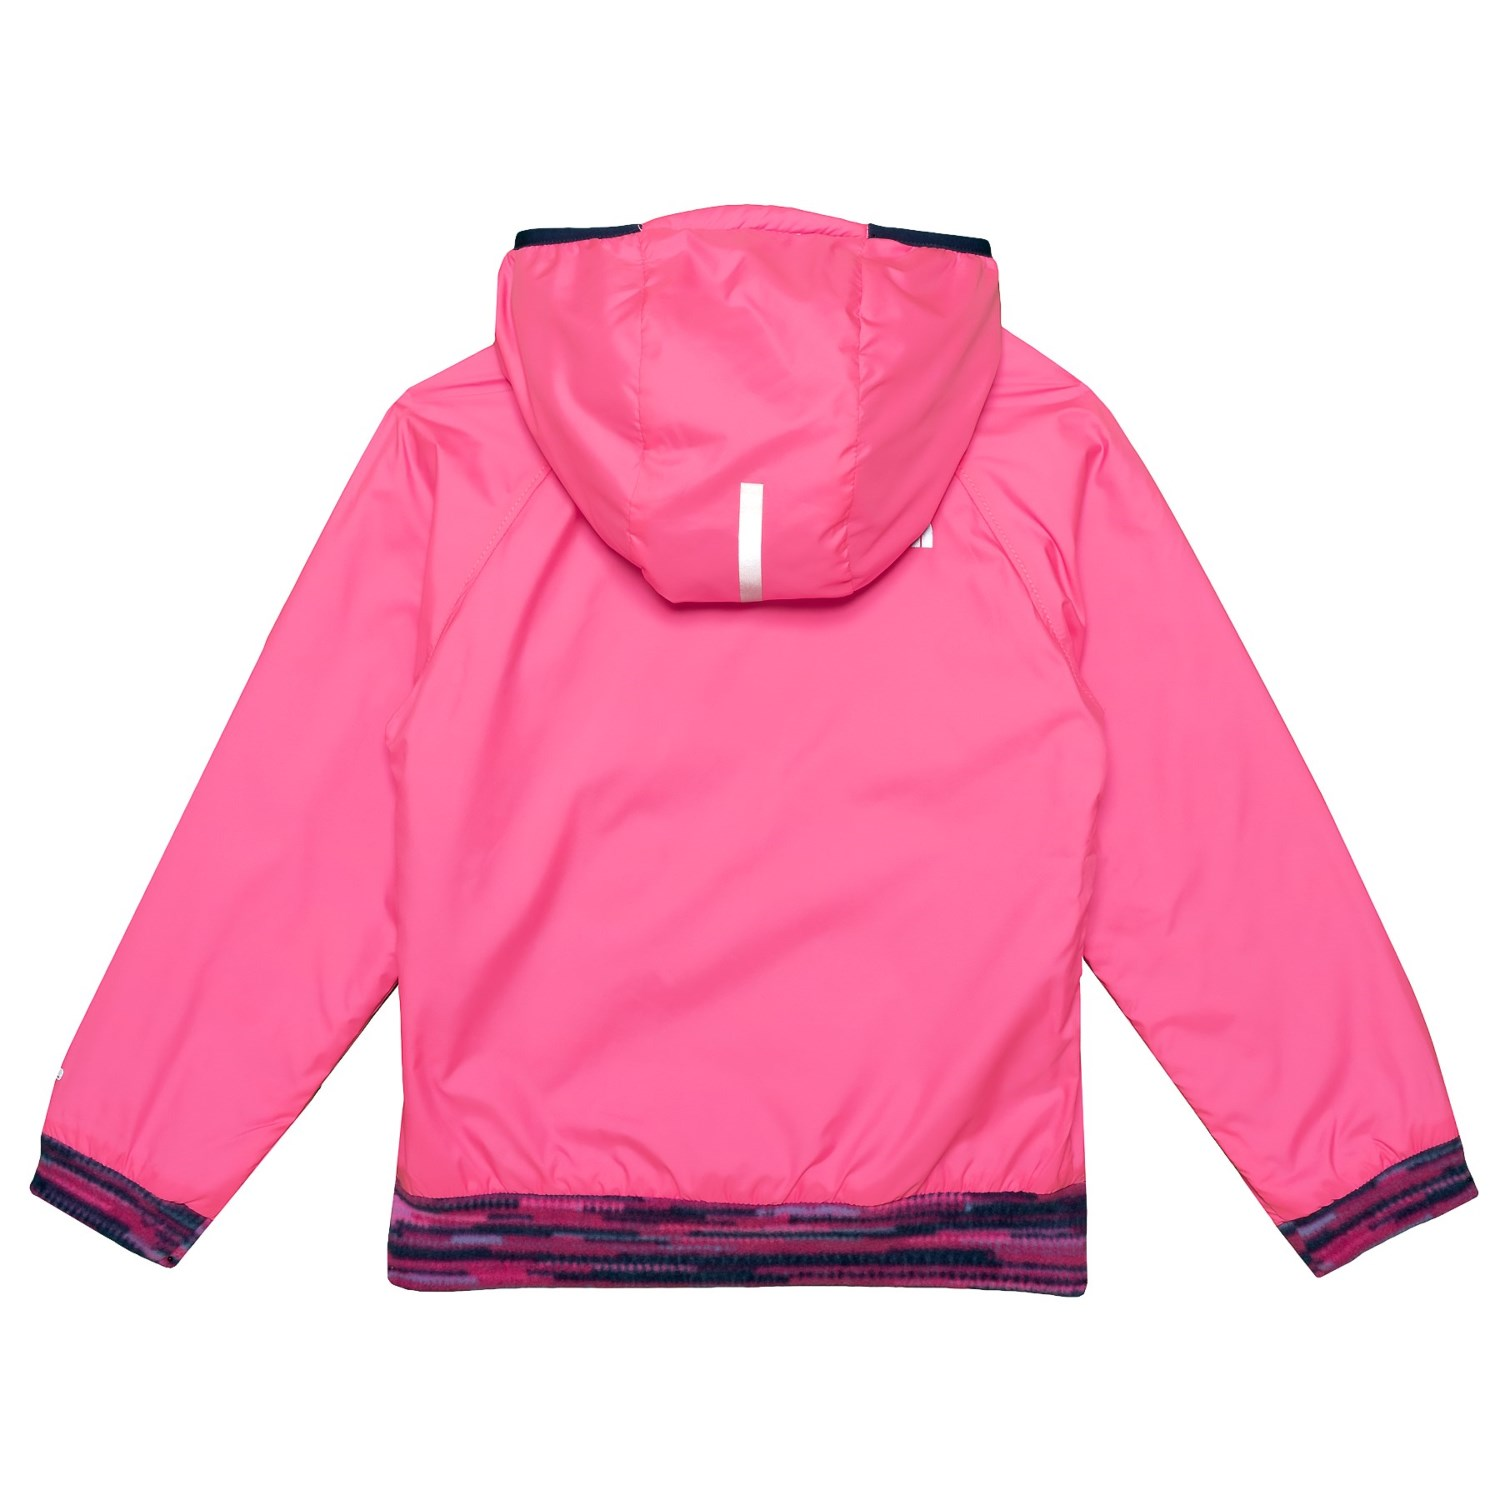 b681f545f The North Face Reversible Breezeway Wind Jacket (For Toddler Girls)